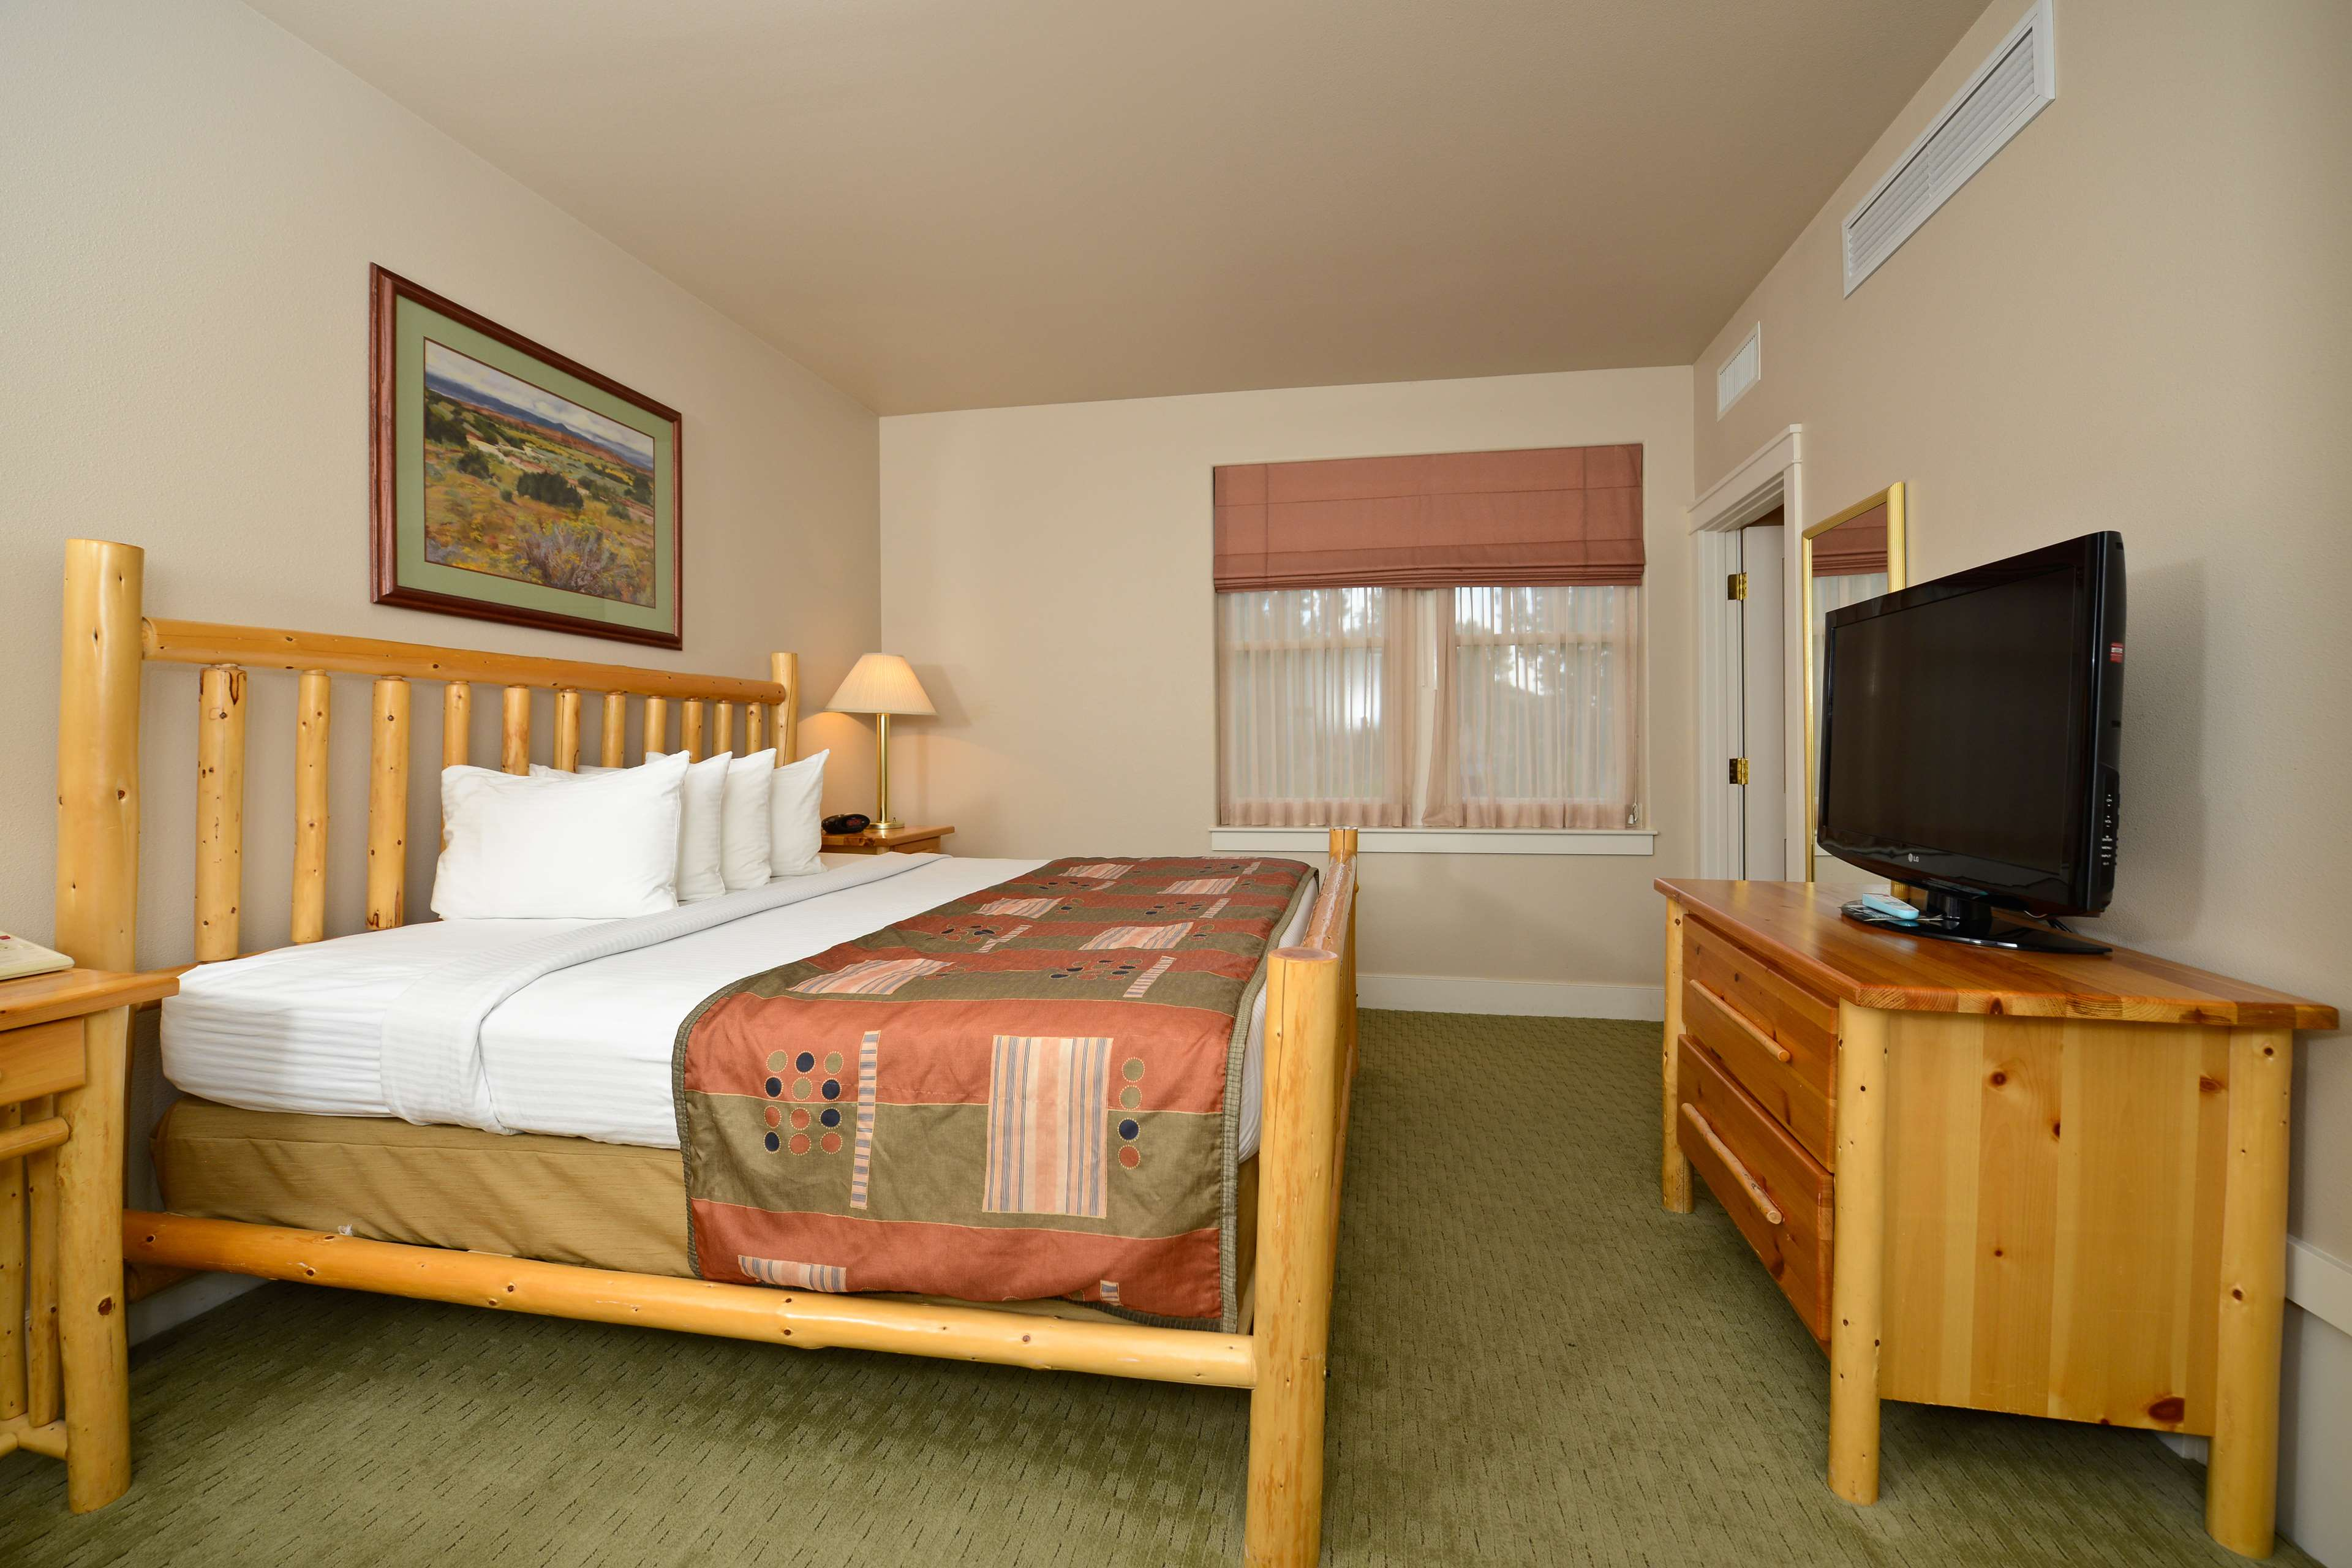 Best Western Plus Plaza Hotel image 30